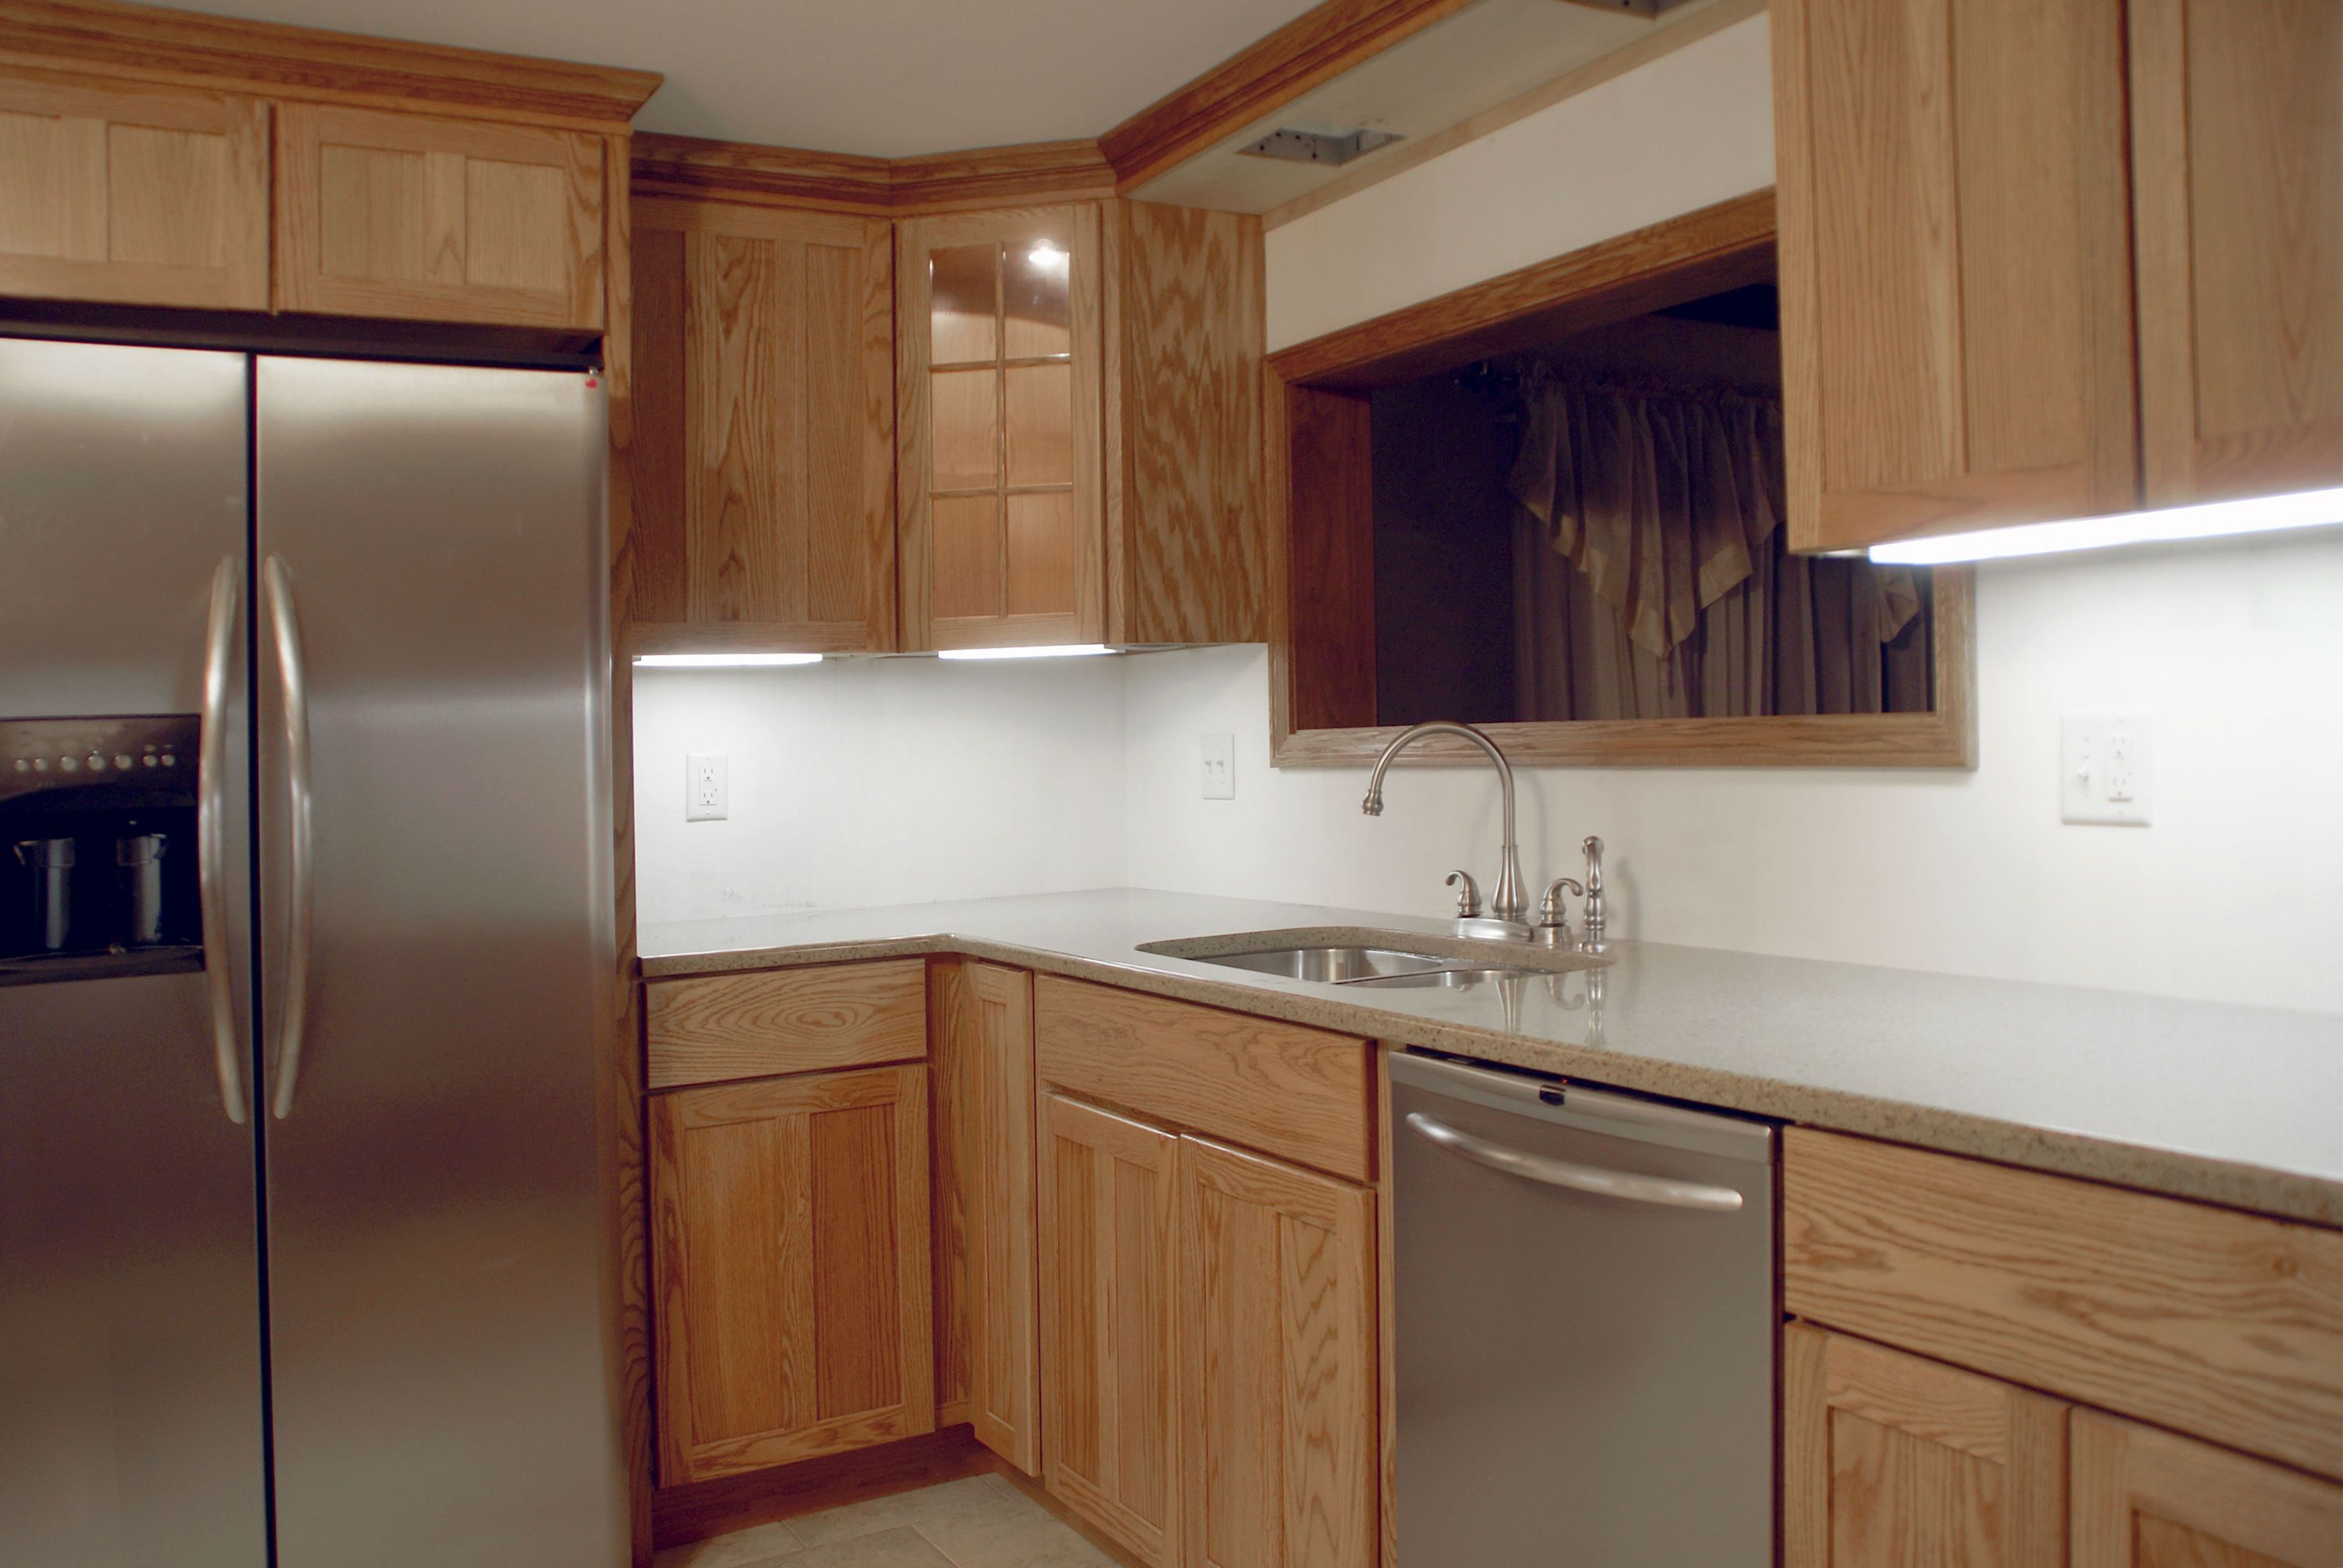 Kitchen cabinets to